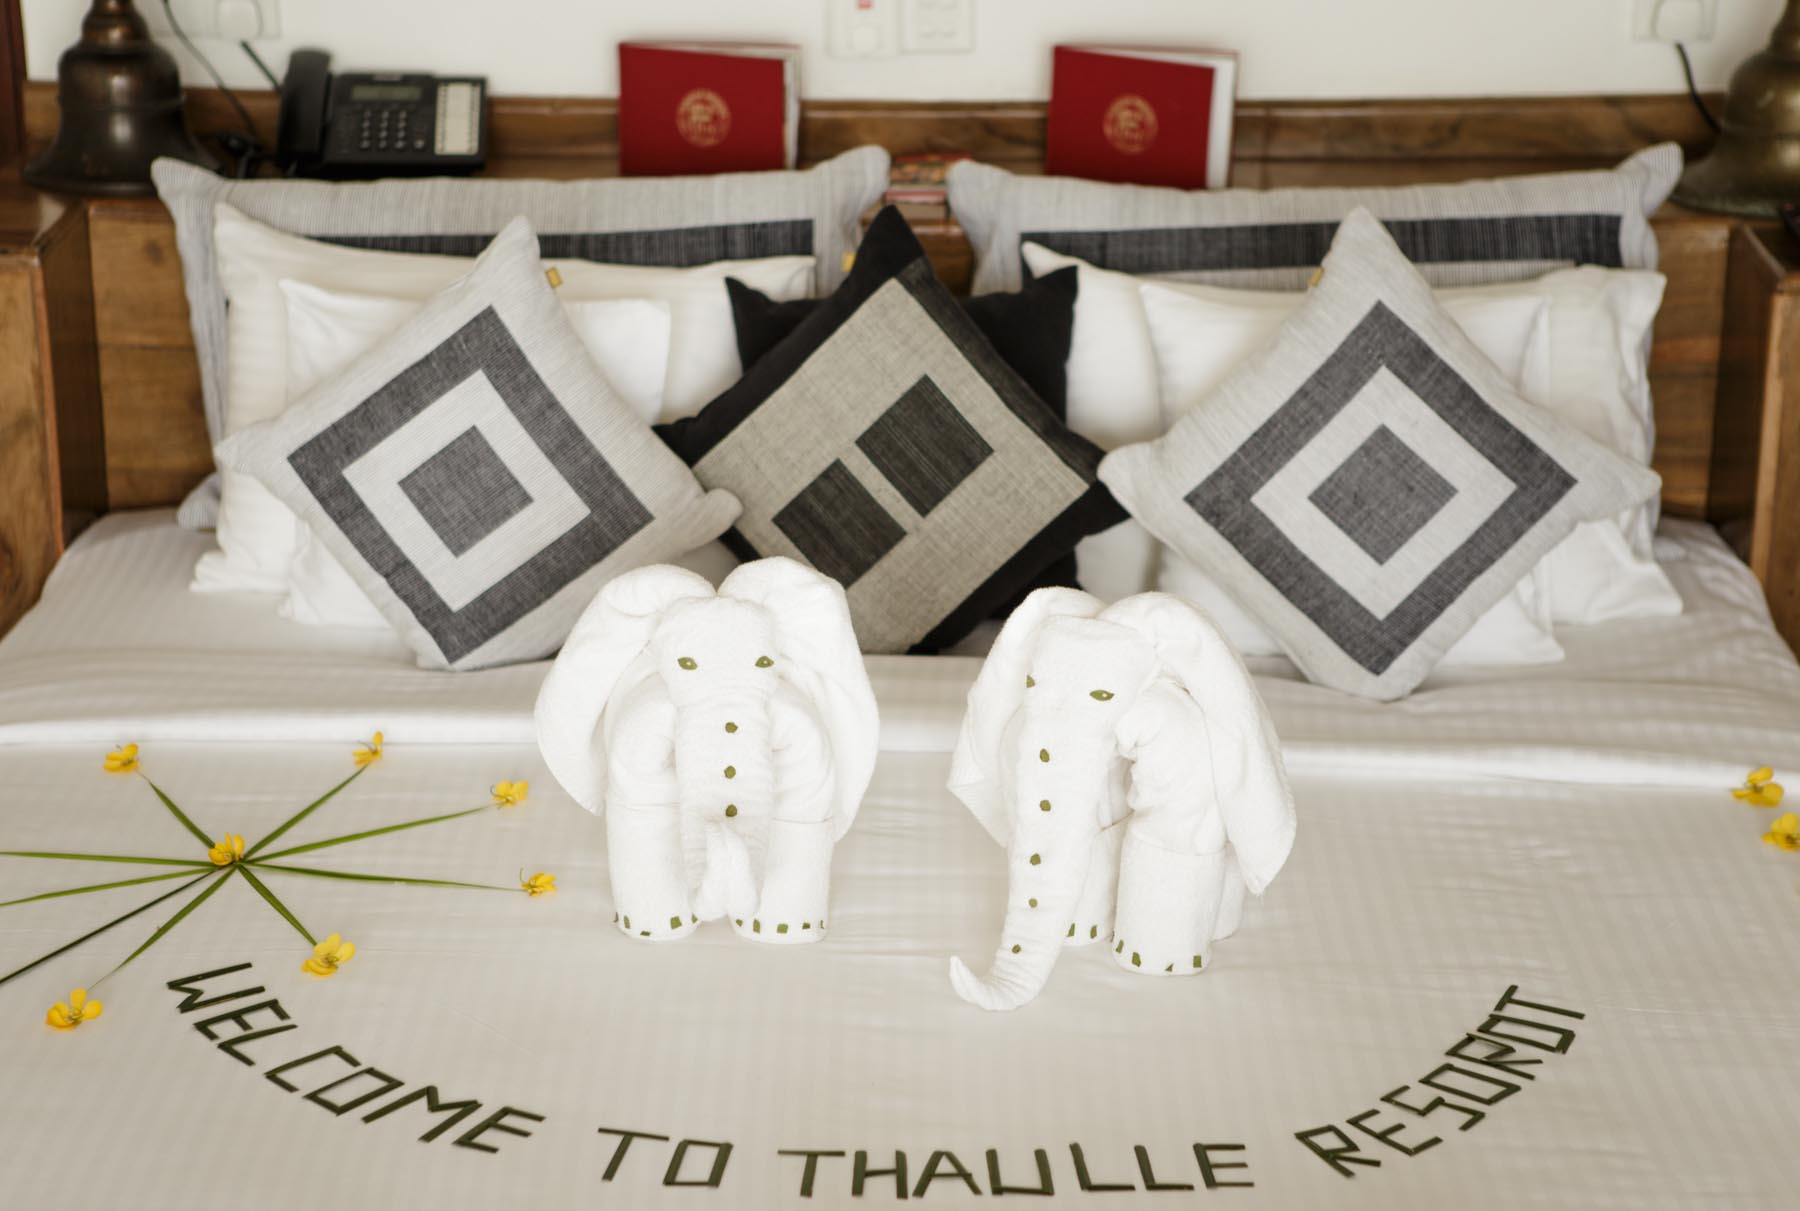 thaulle-resort-sri-lanka-classic-deluxe-welcome-to-thaulle